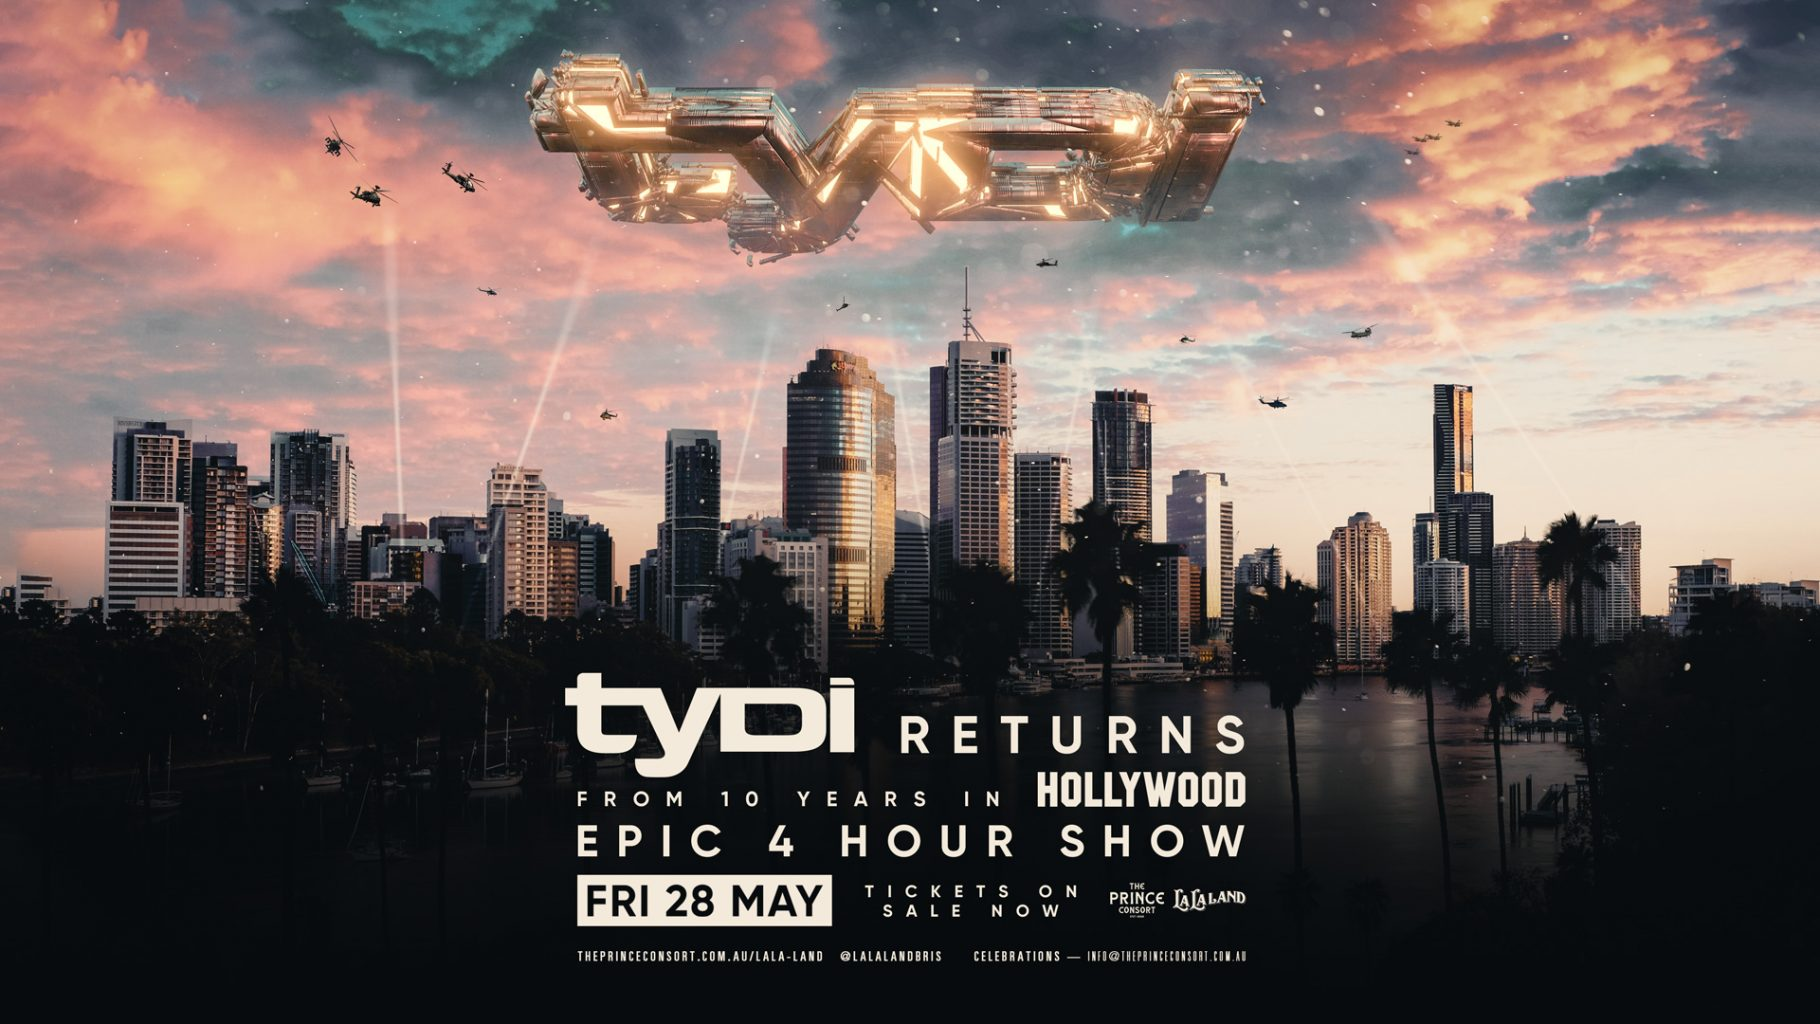 TyDi Returns